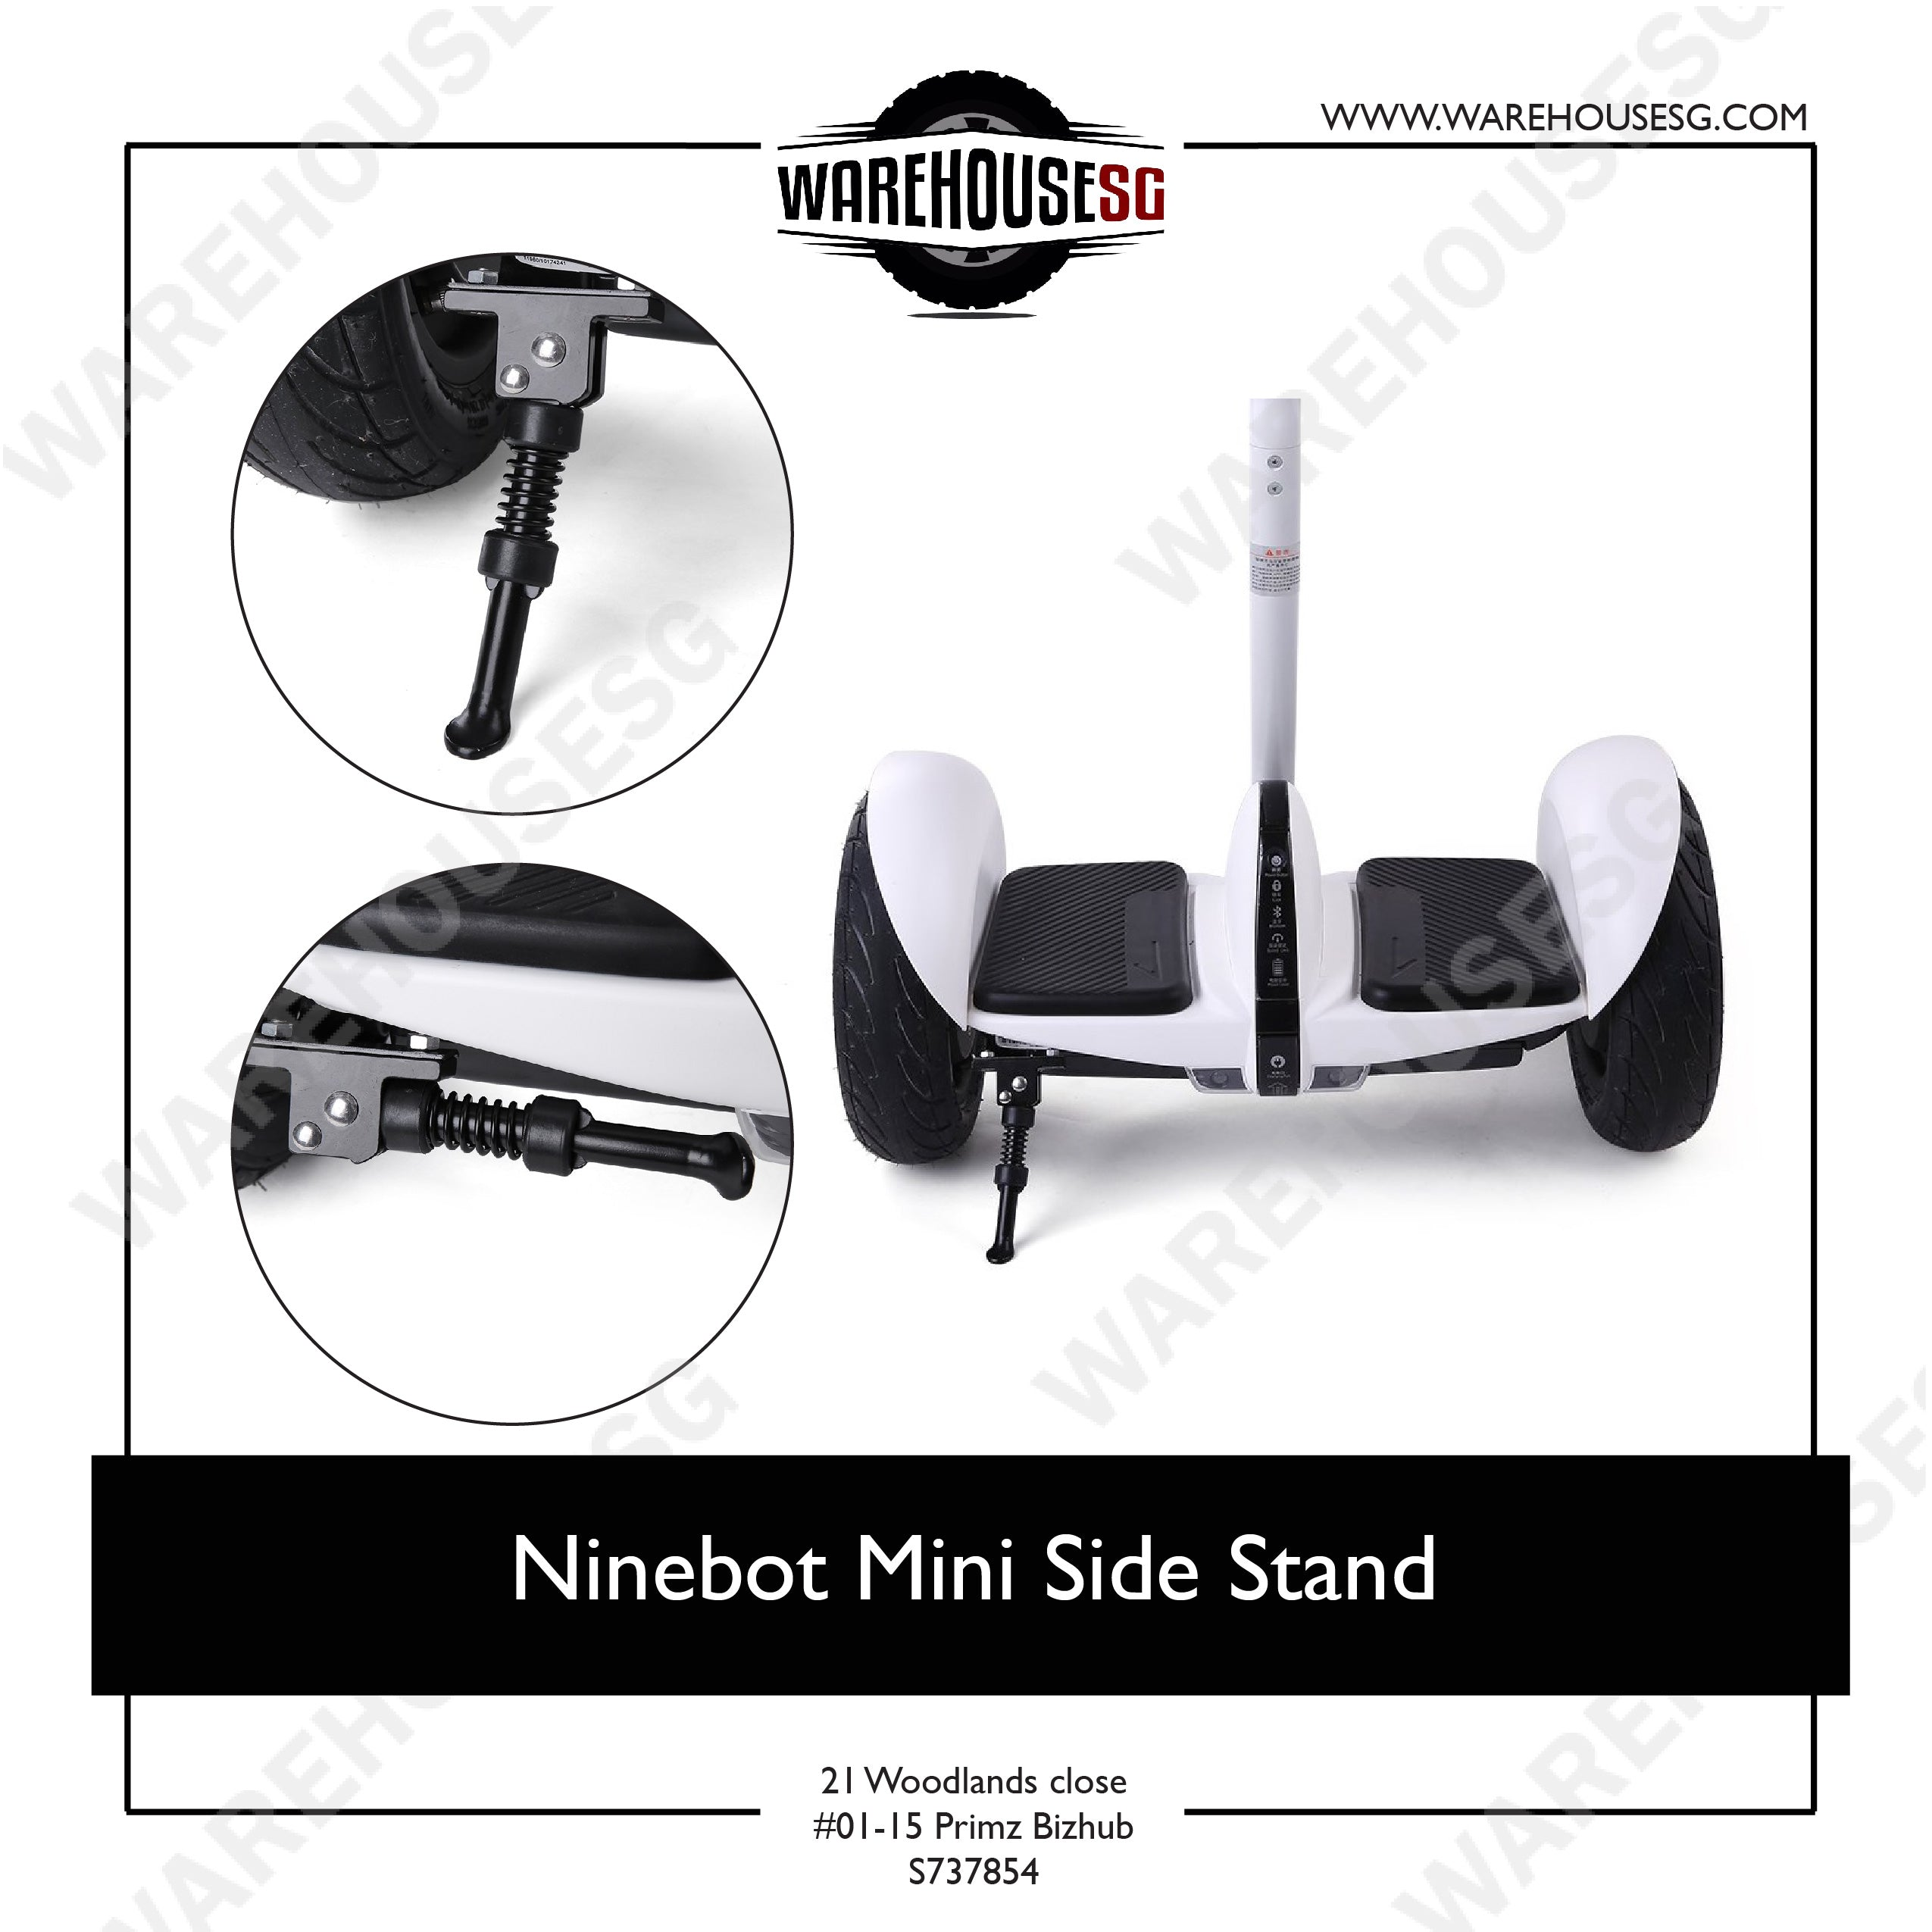 Ninebot Mini Side Stand